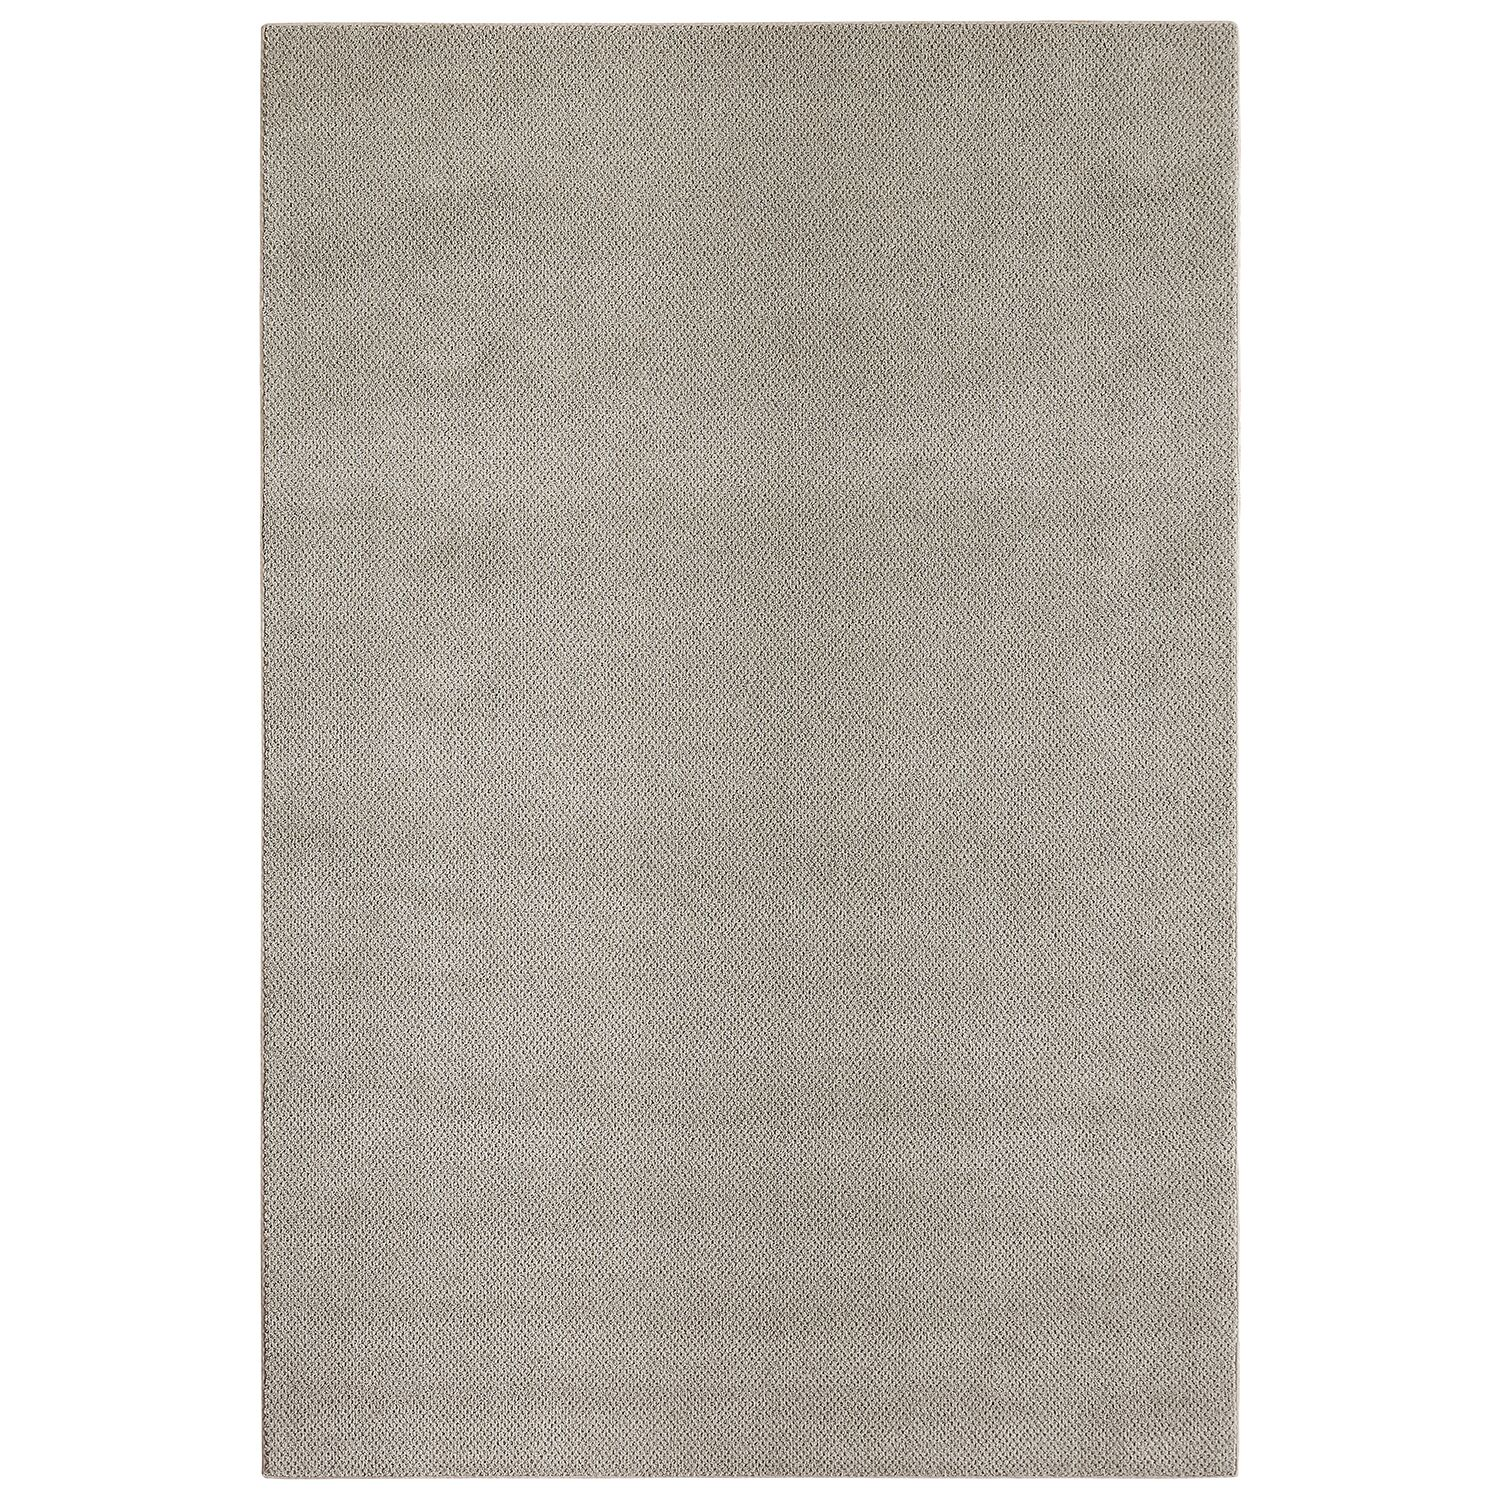 Bettie Mineral Area Rug Rug Size: Rectangle 6'x9'